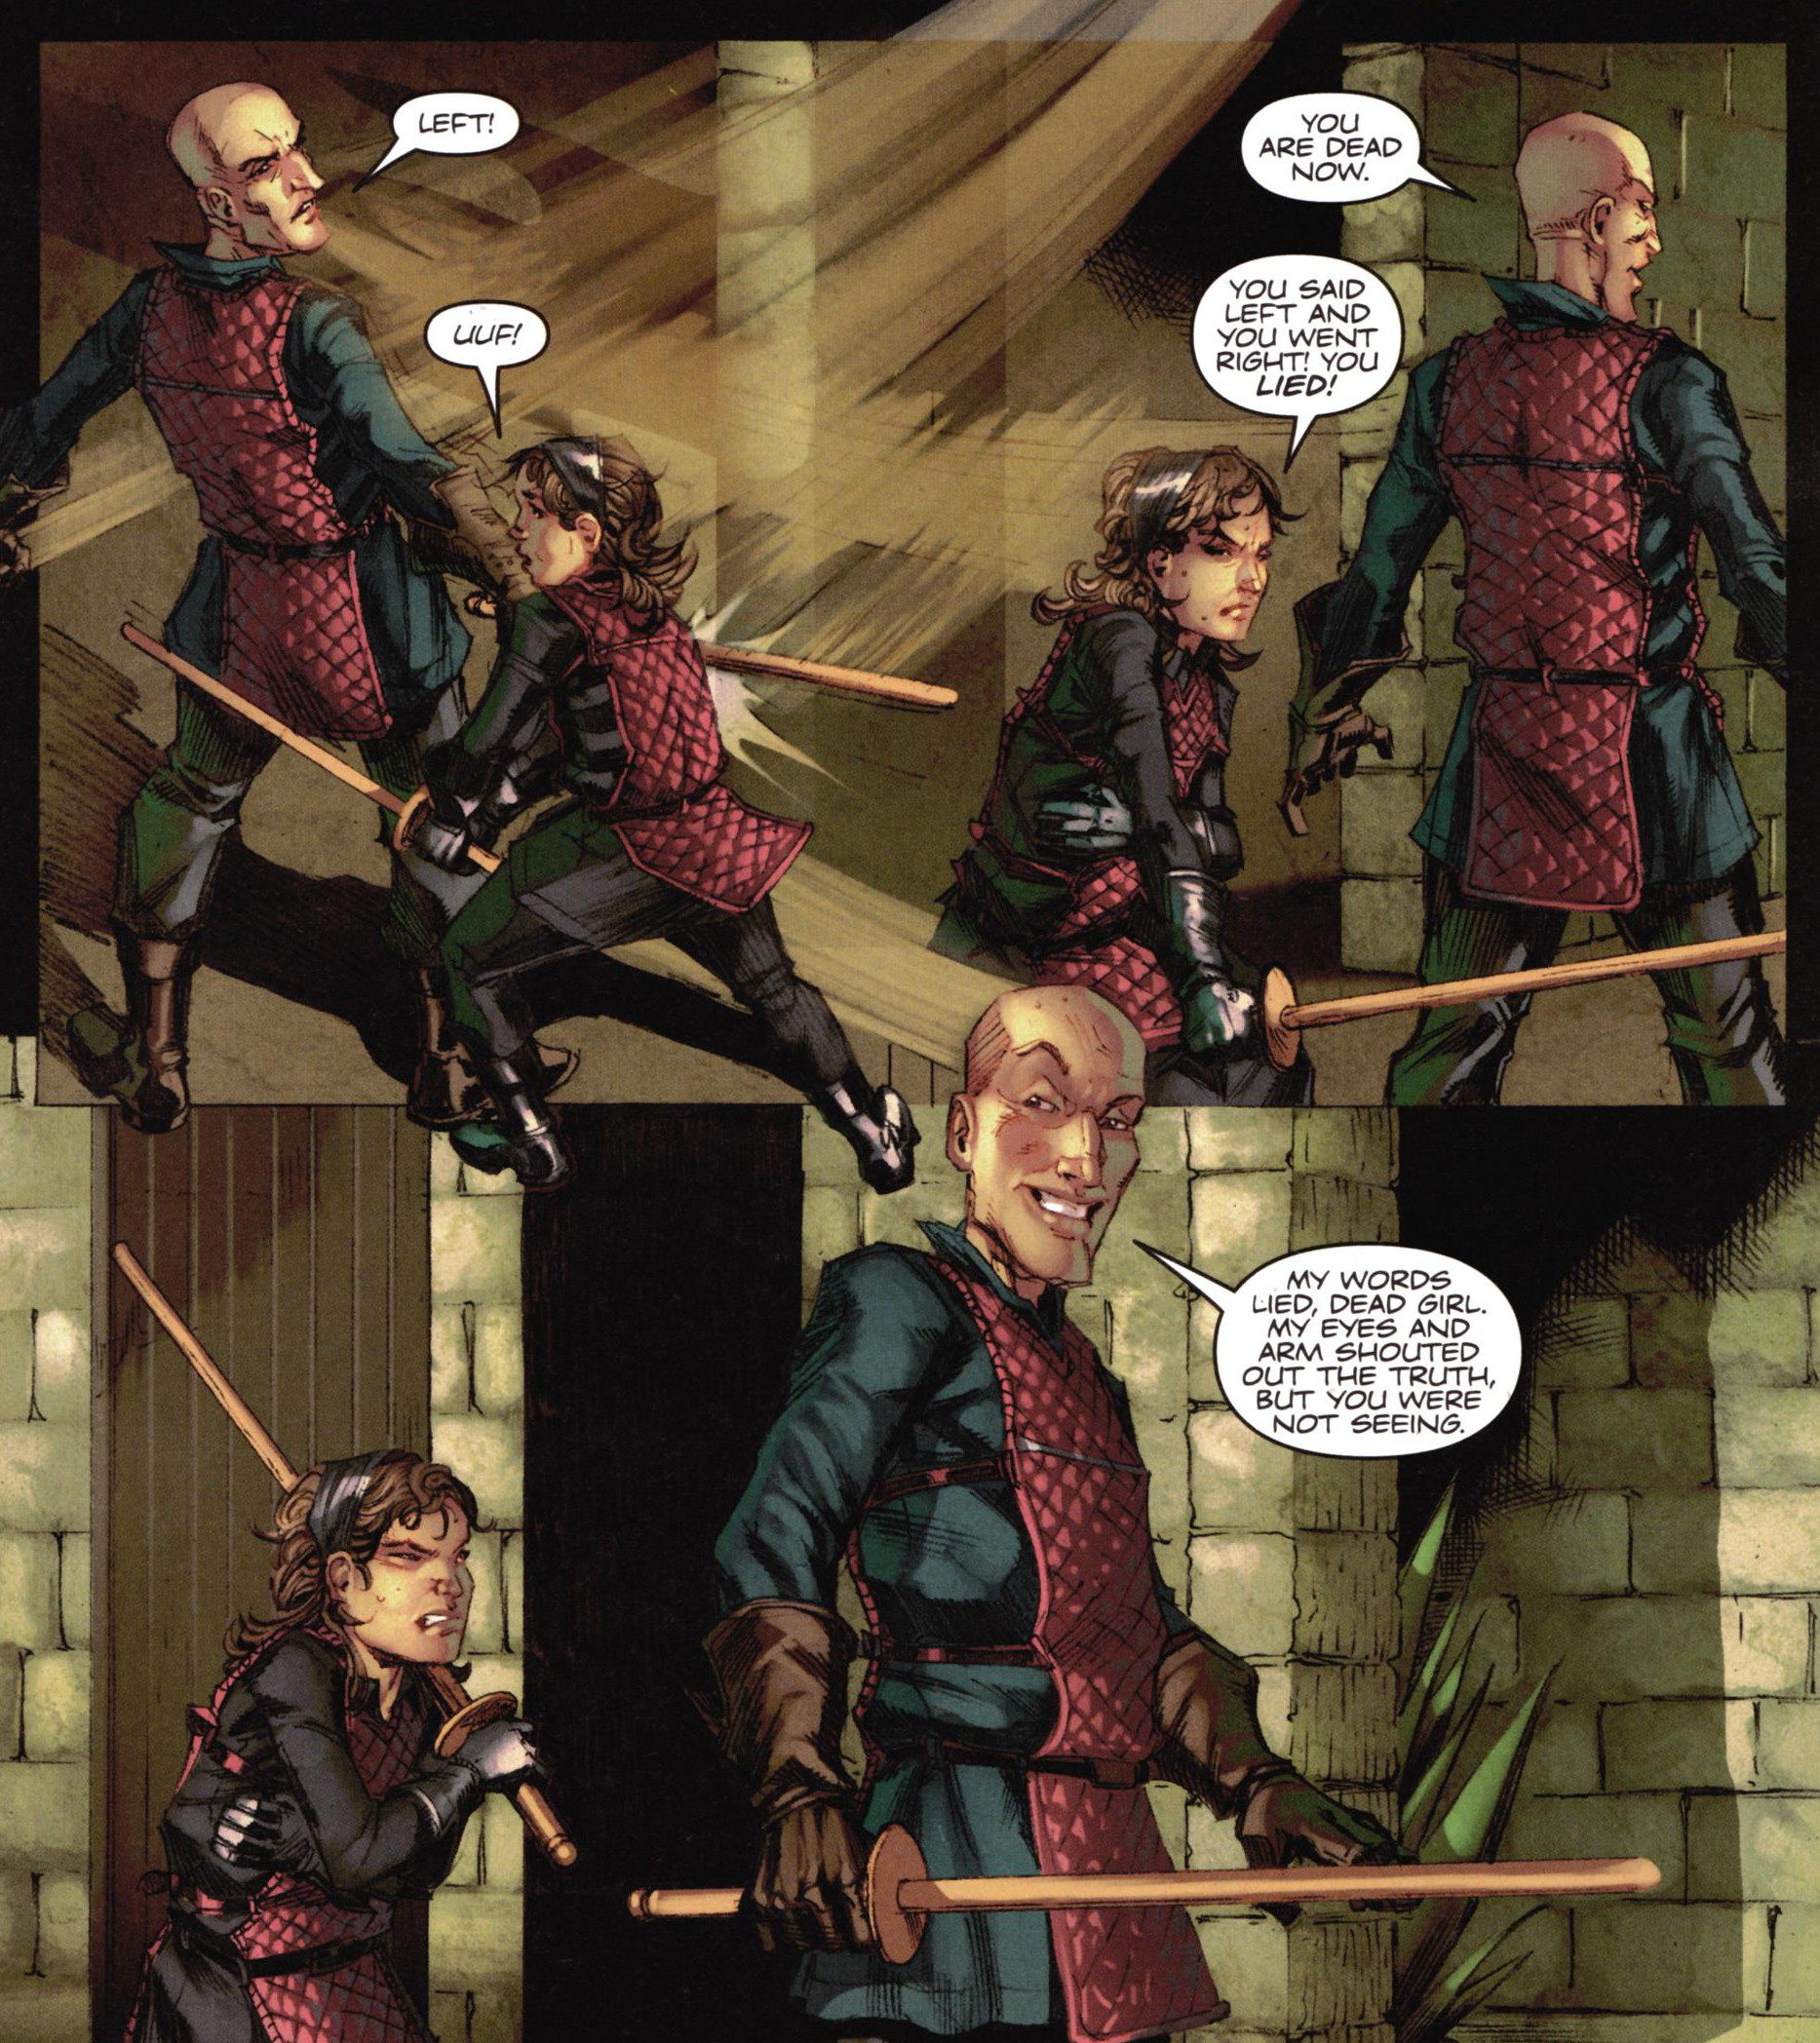 A Game of Thrones The Graphic Novel review